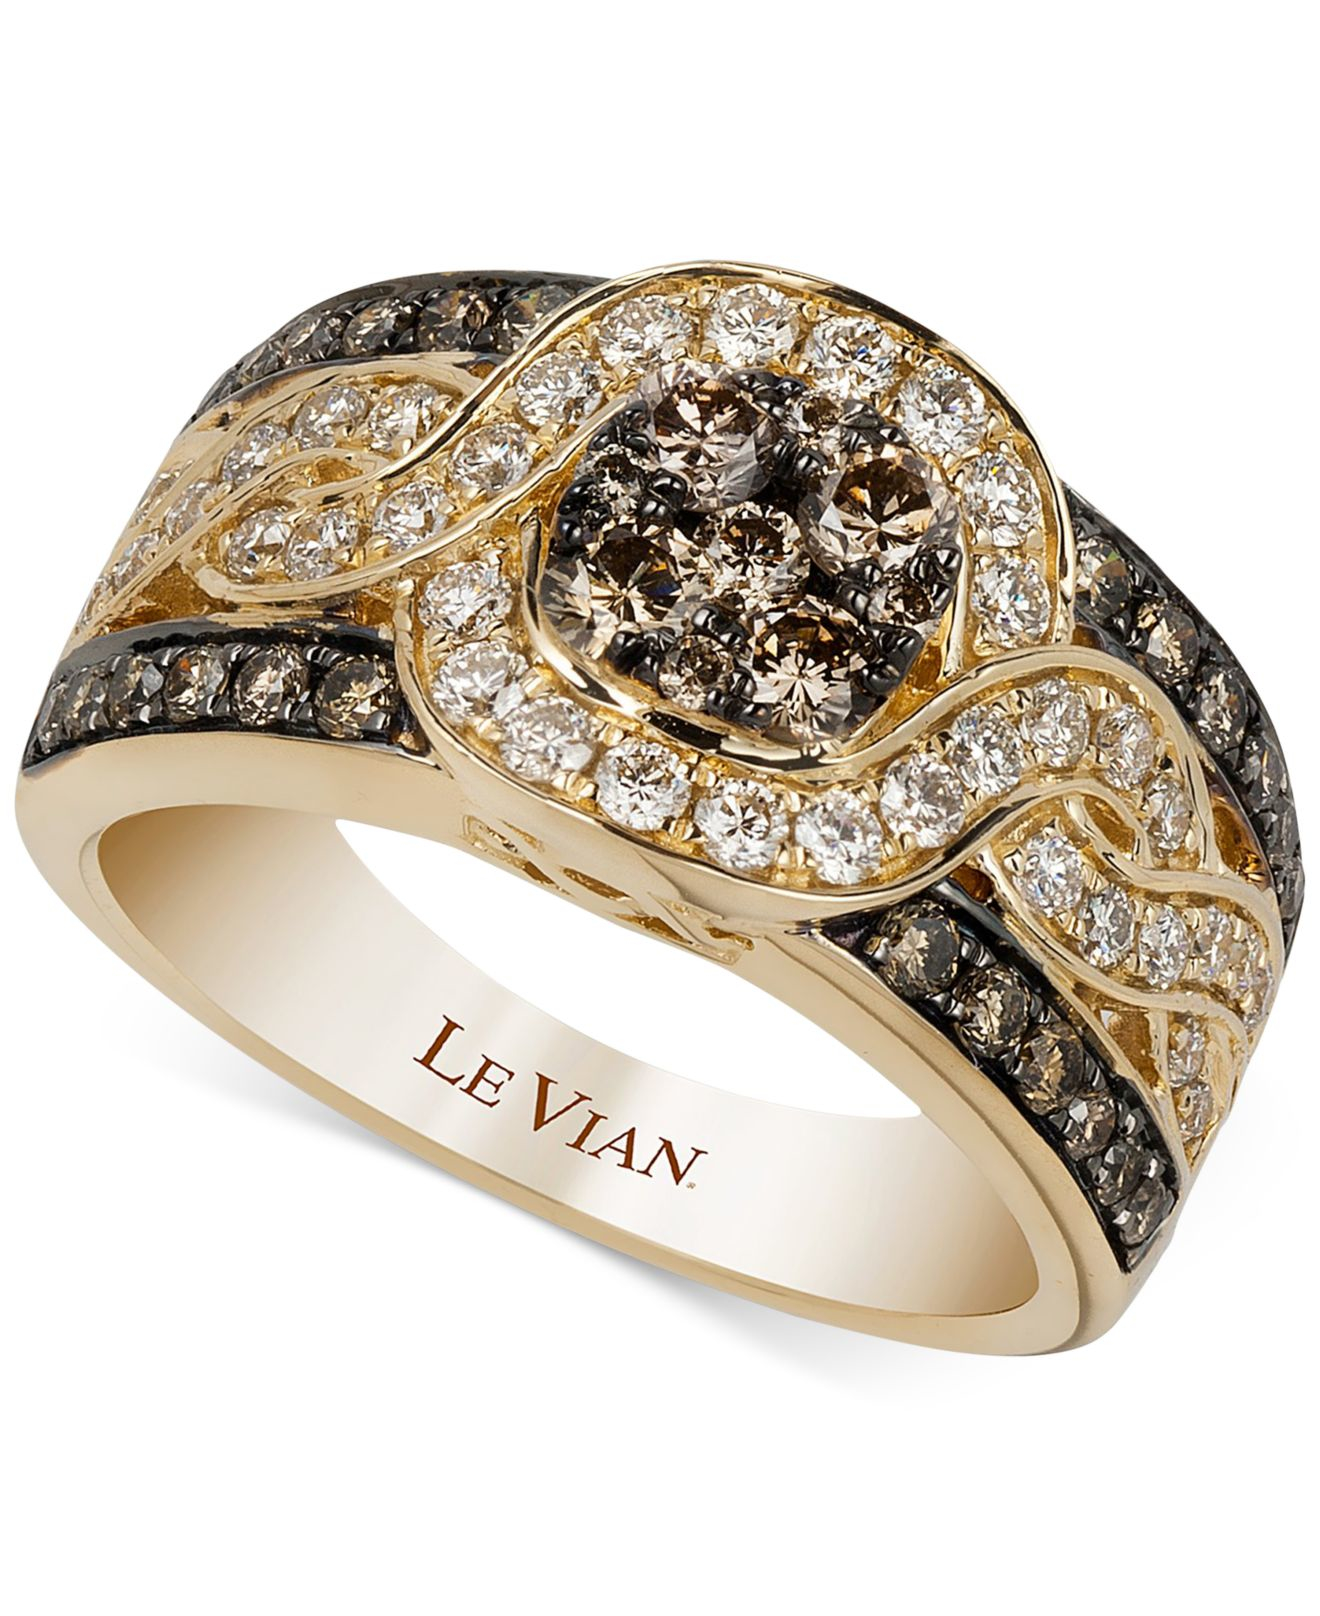 t set chocolate engagement in and rings vian white gold ct le diamond certified w wedding tw bridal media